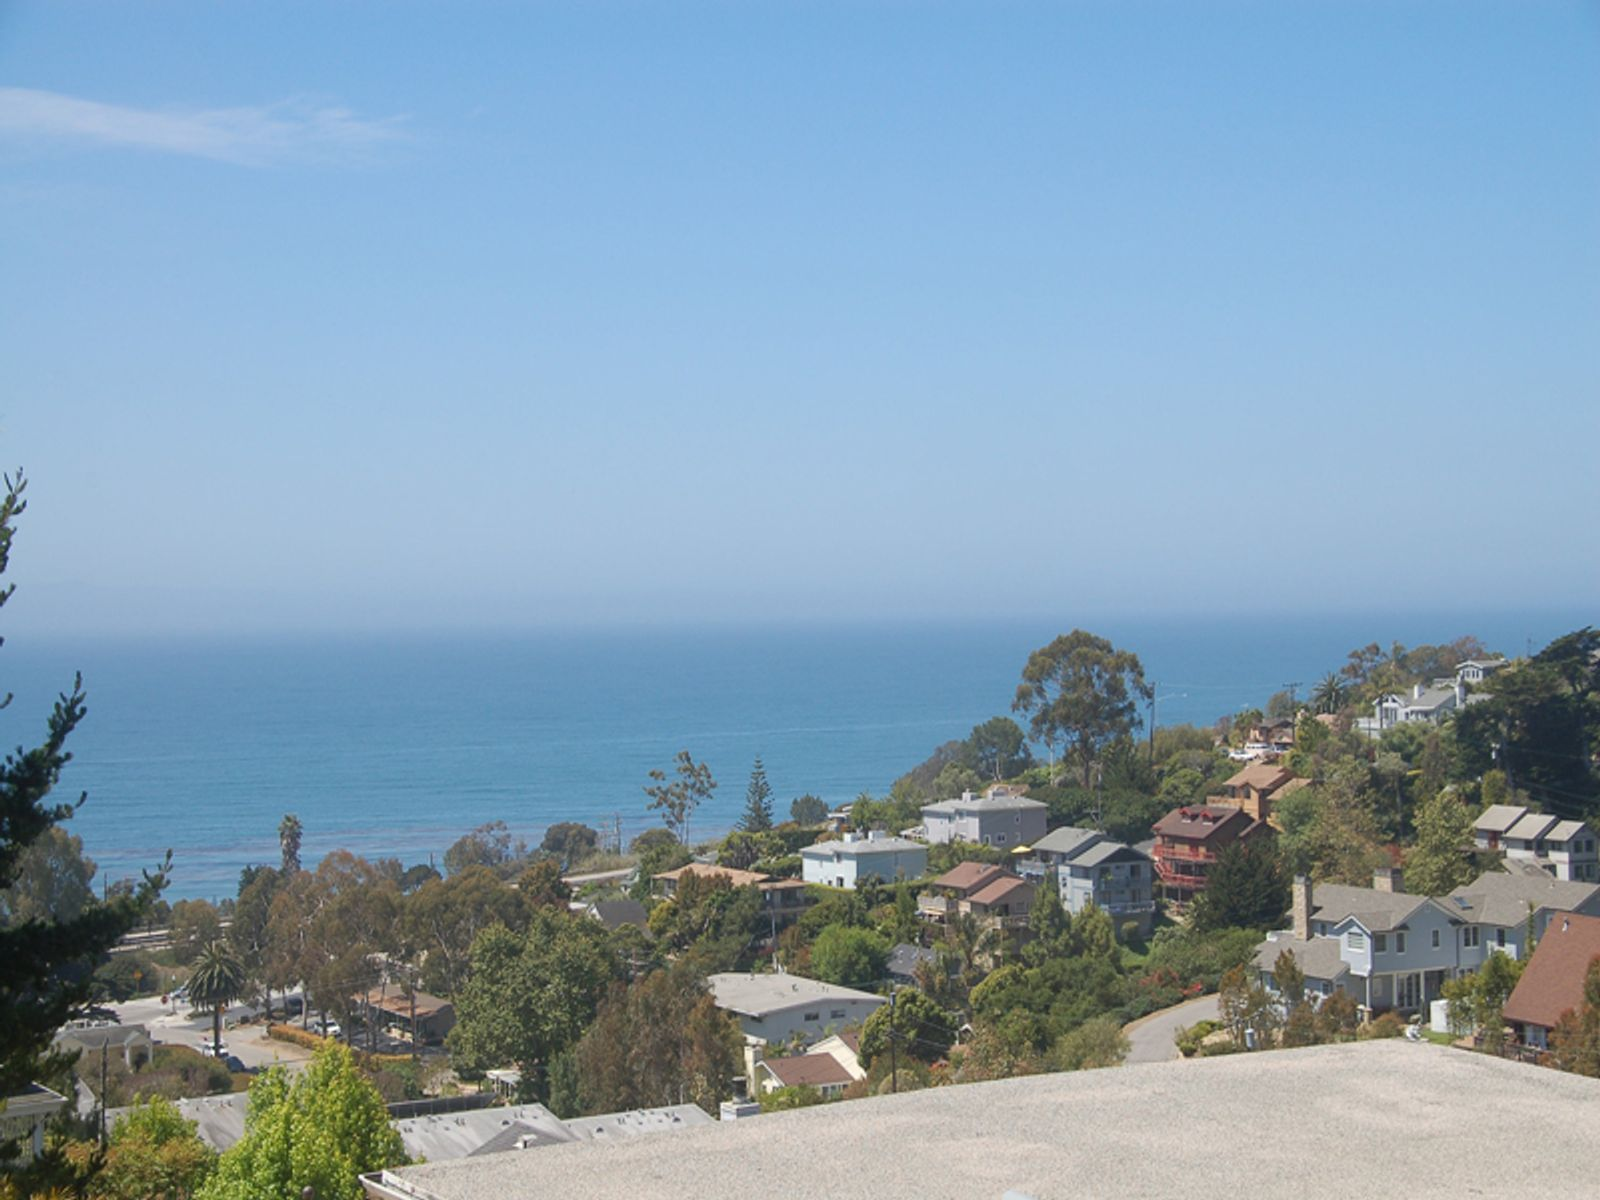 Incredible Ocean Views, Summerland CA Single Family Home - Santa Barbara Real Estate